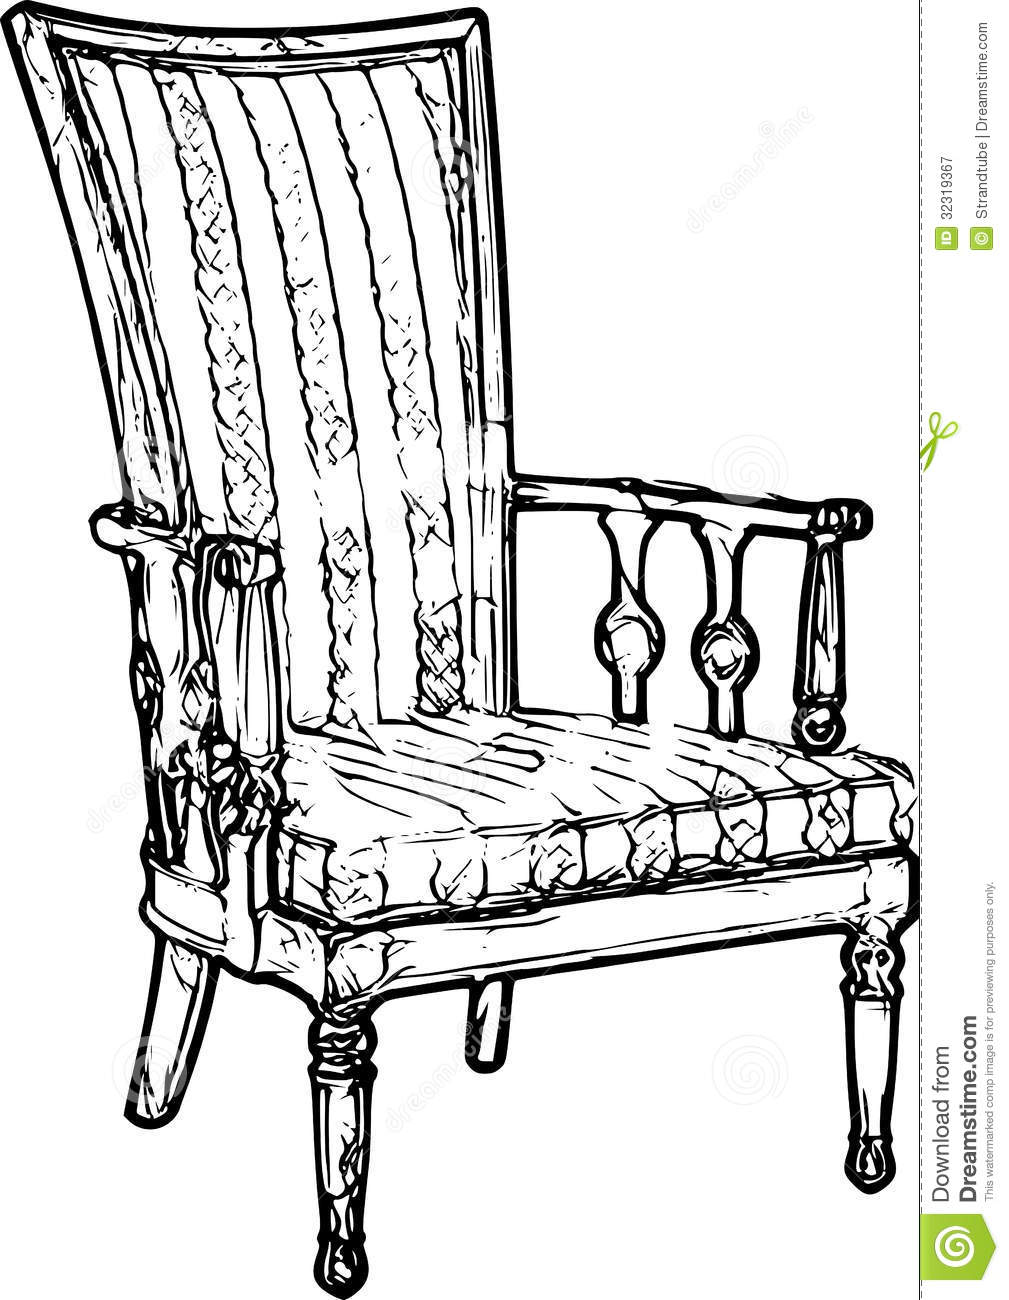 Chair Sketch delighful chair sketcht and ideas